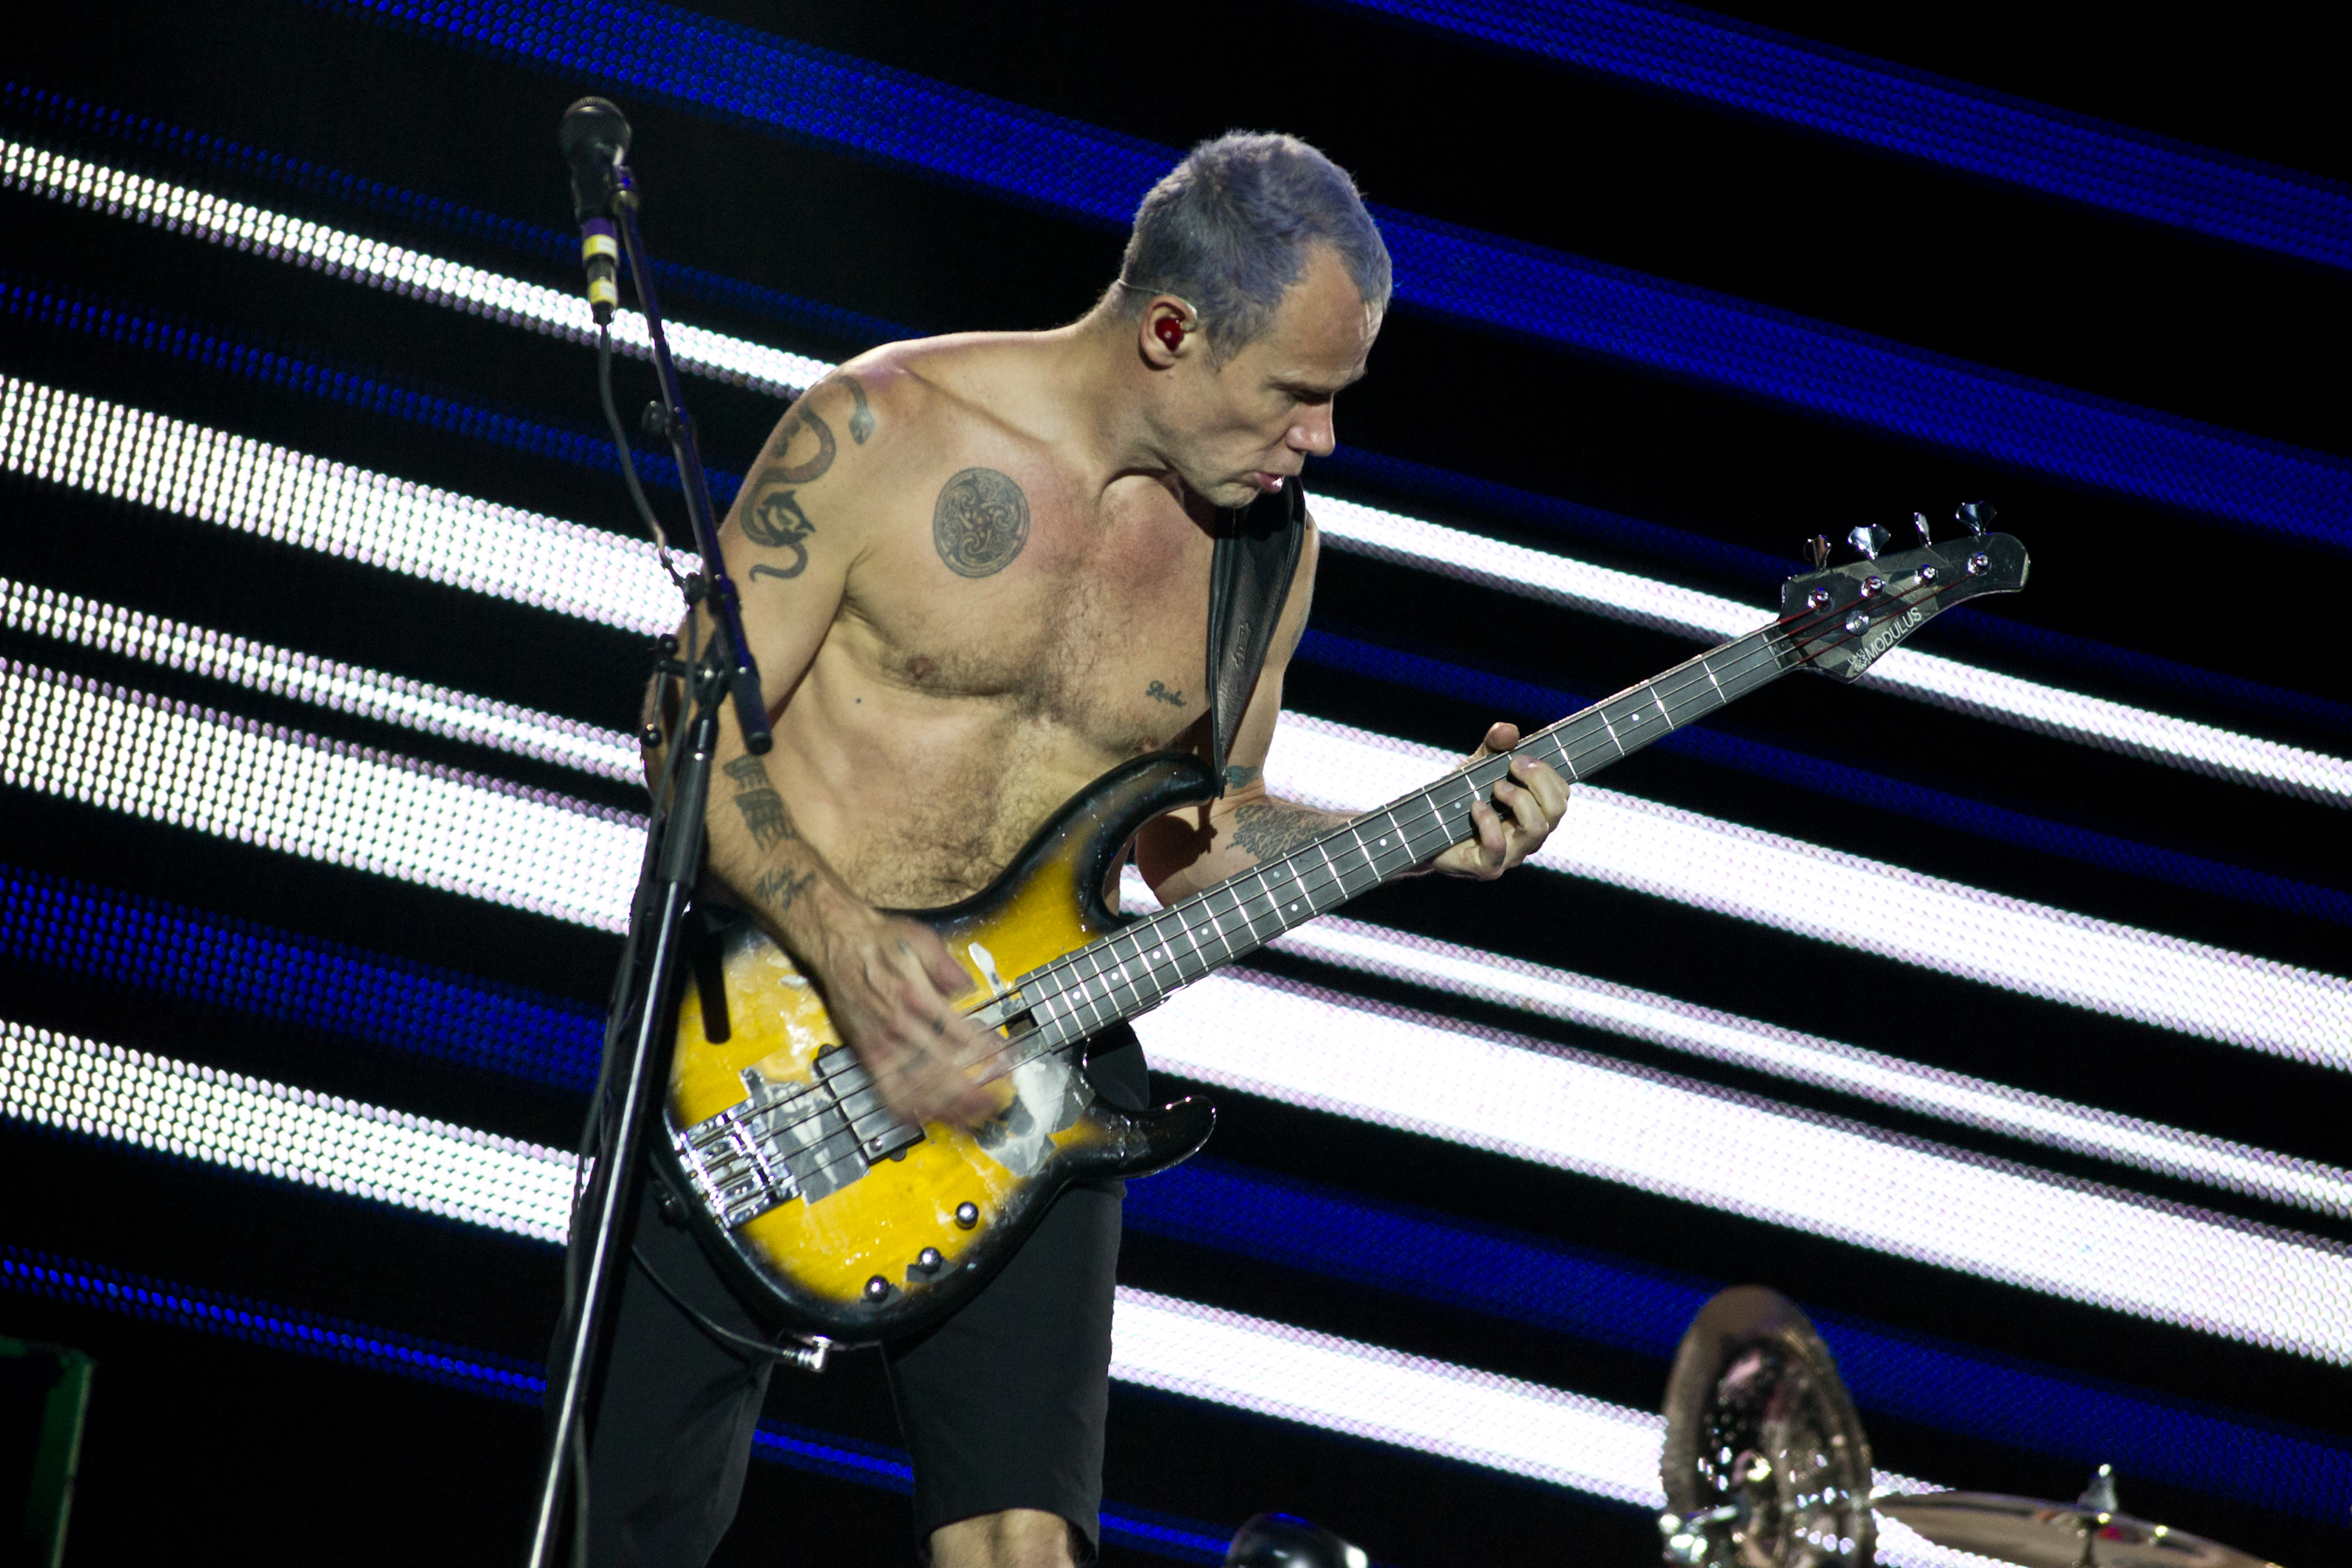 Red_Hot_Chili_Peppers_-_Rock_in_Rio_Madrid_2012_-_11